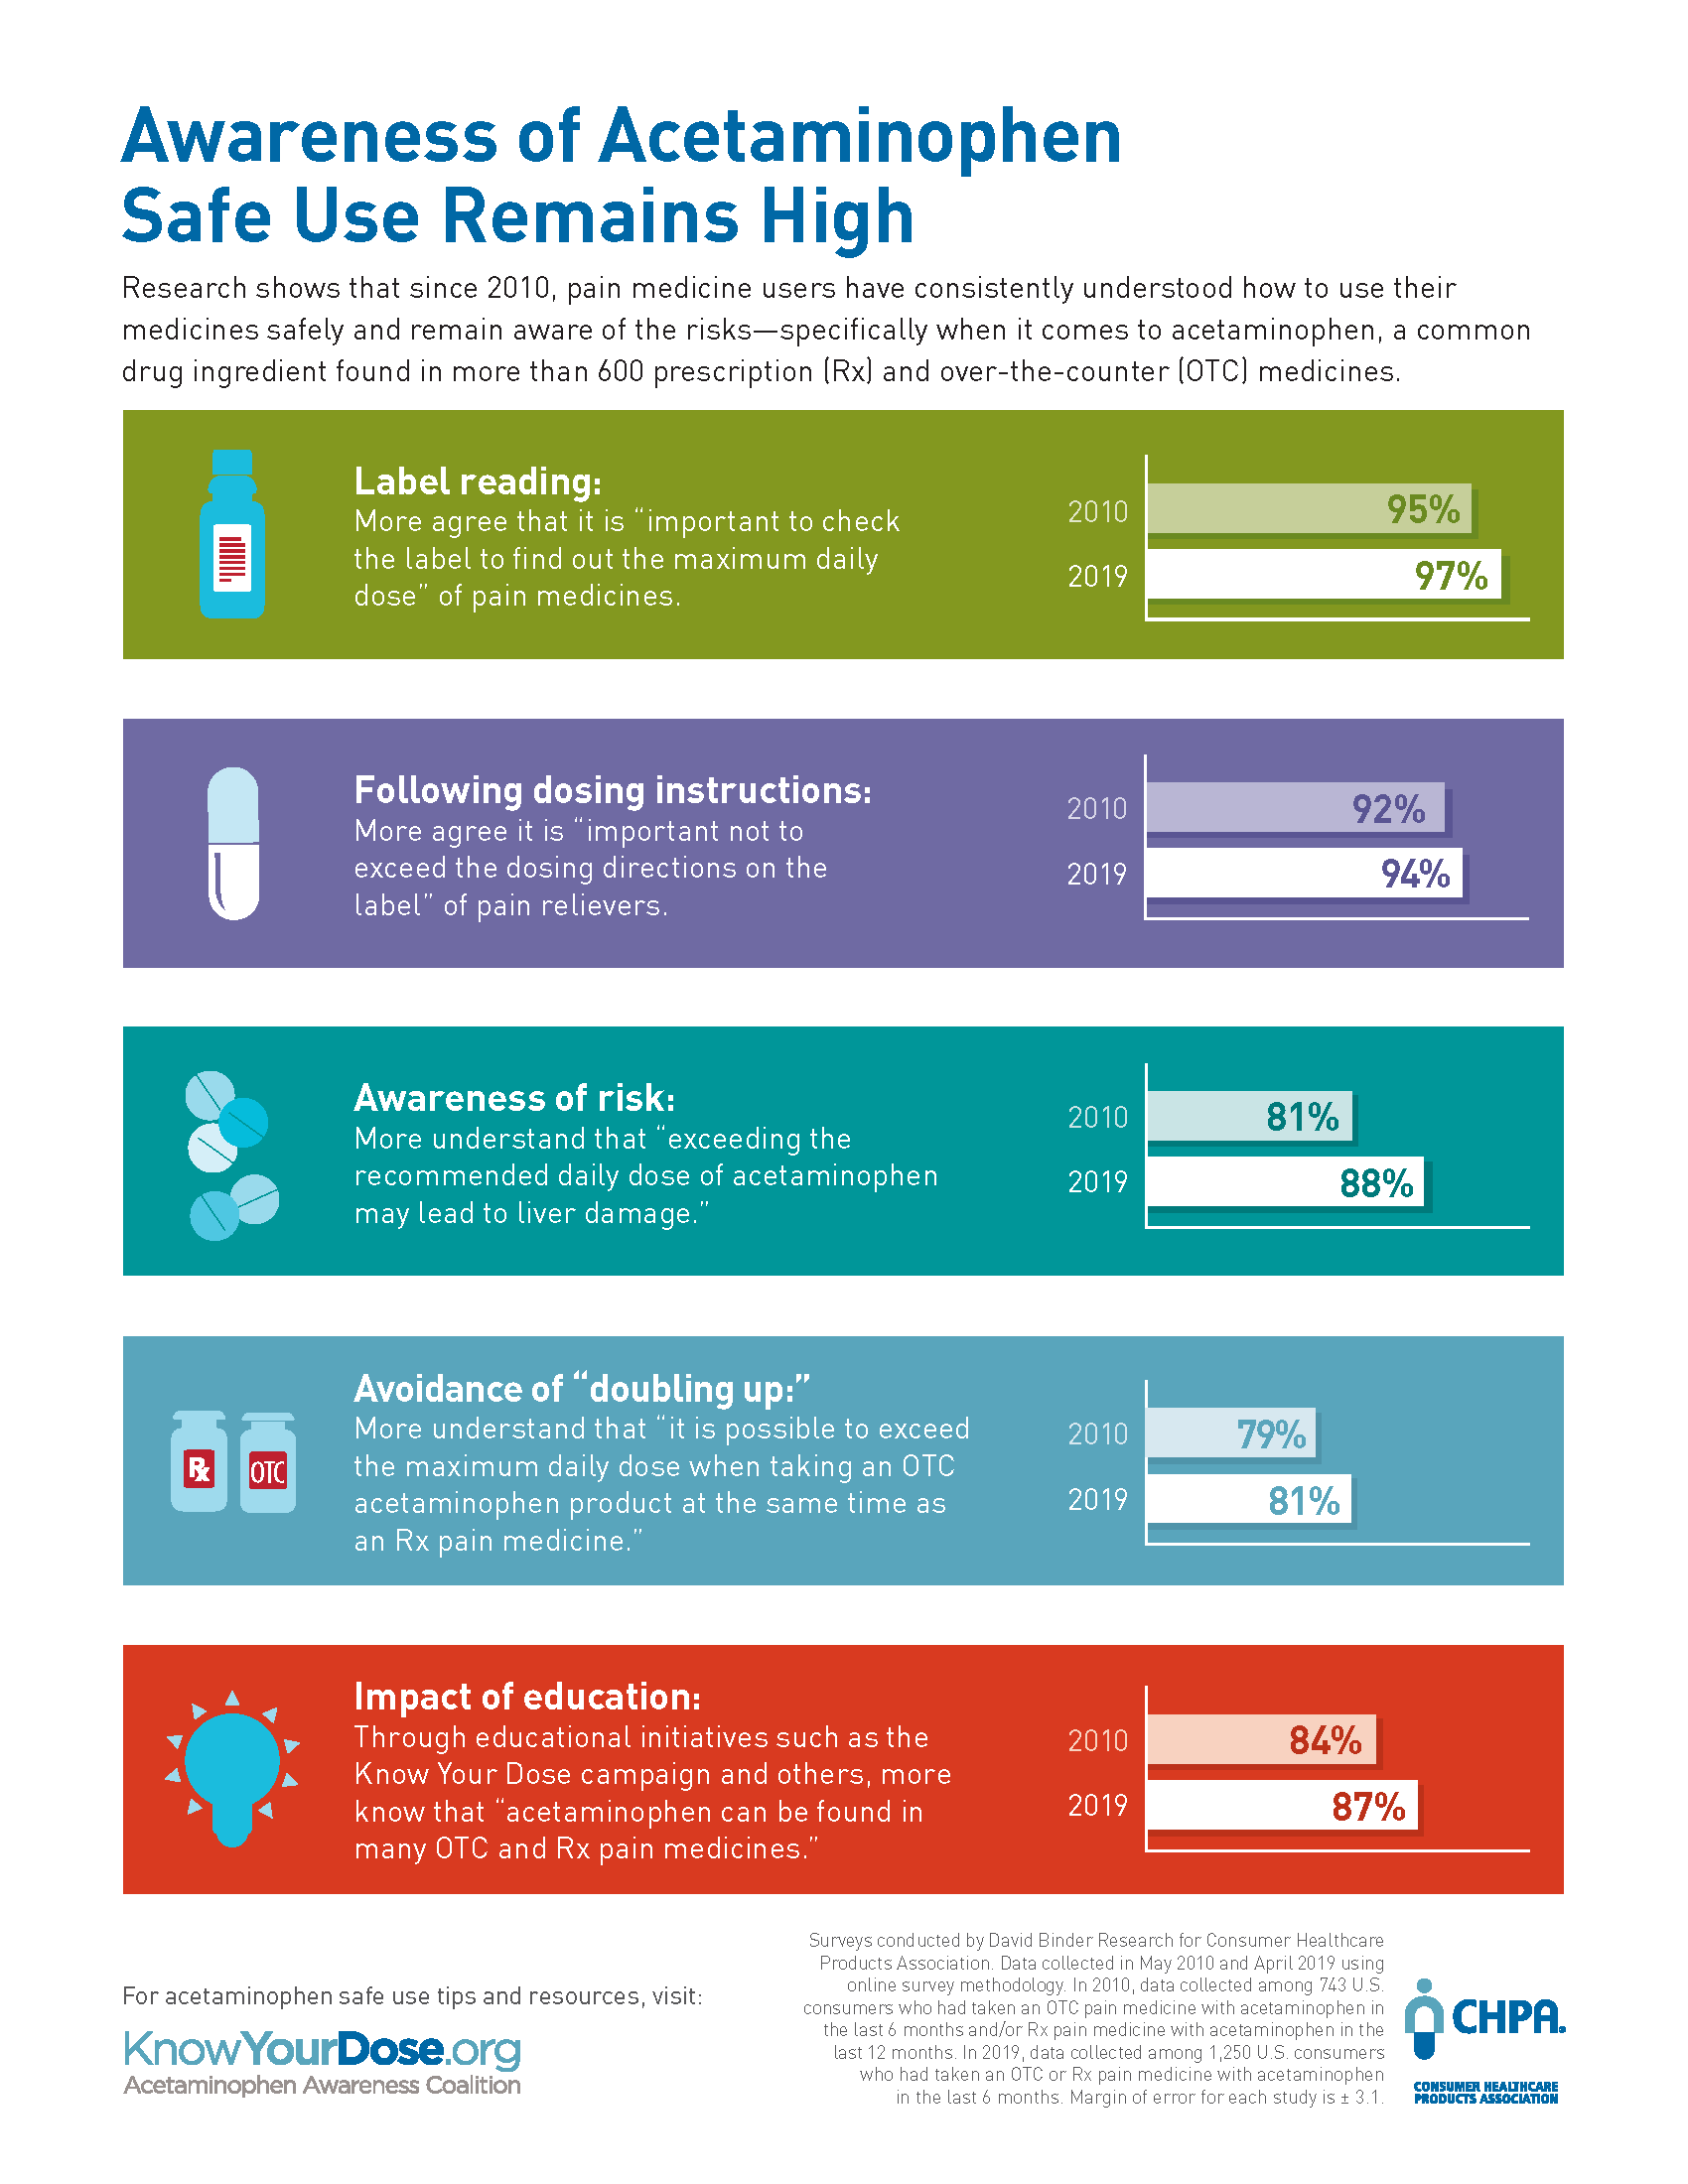 multicolored infographic demonstrating awareness of acetaminophen safe use rates